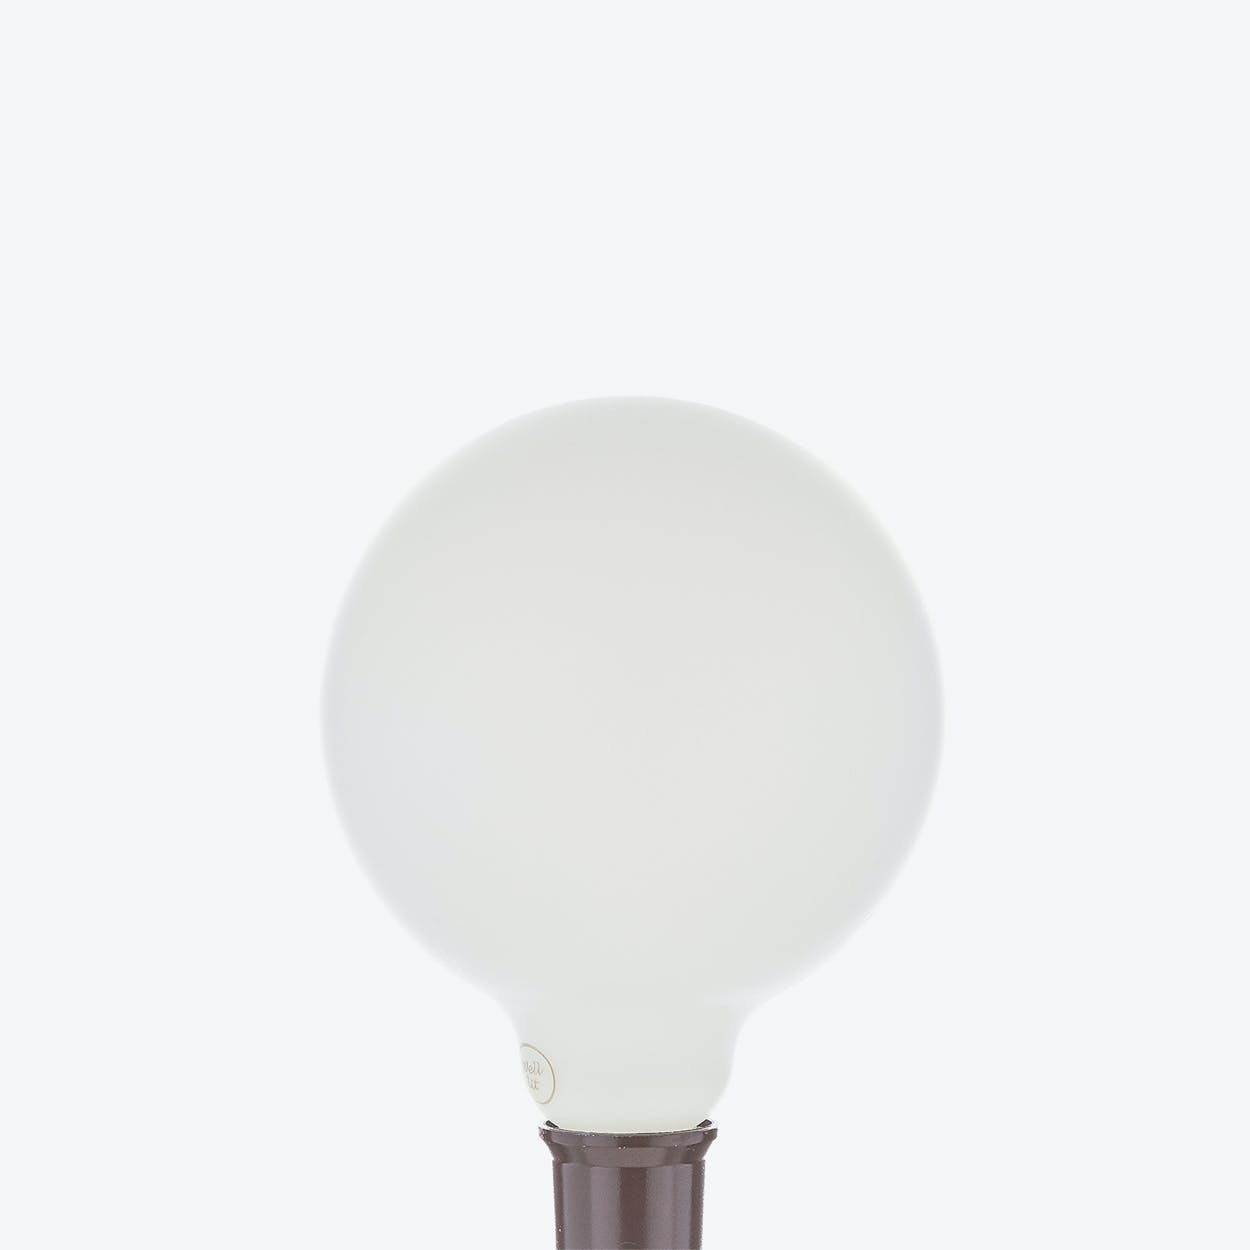 Calypso LED Filament Light Bulb in Frosted Glass